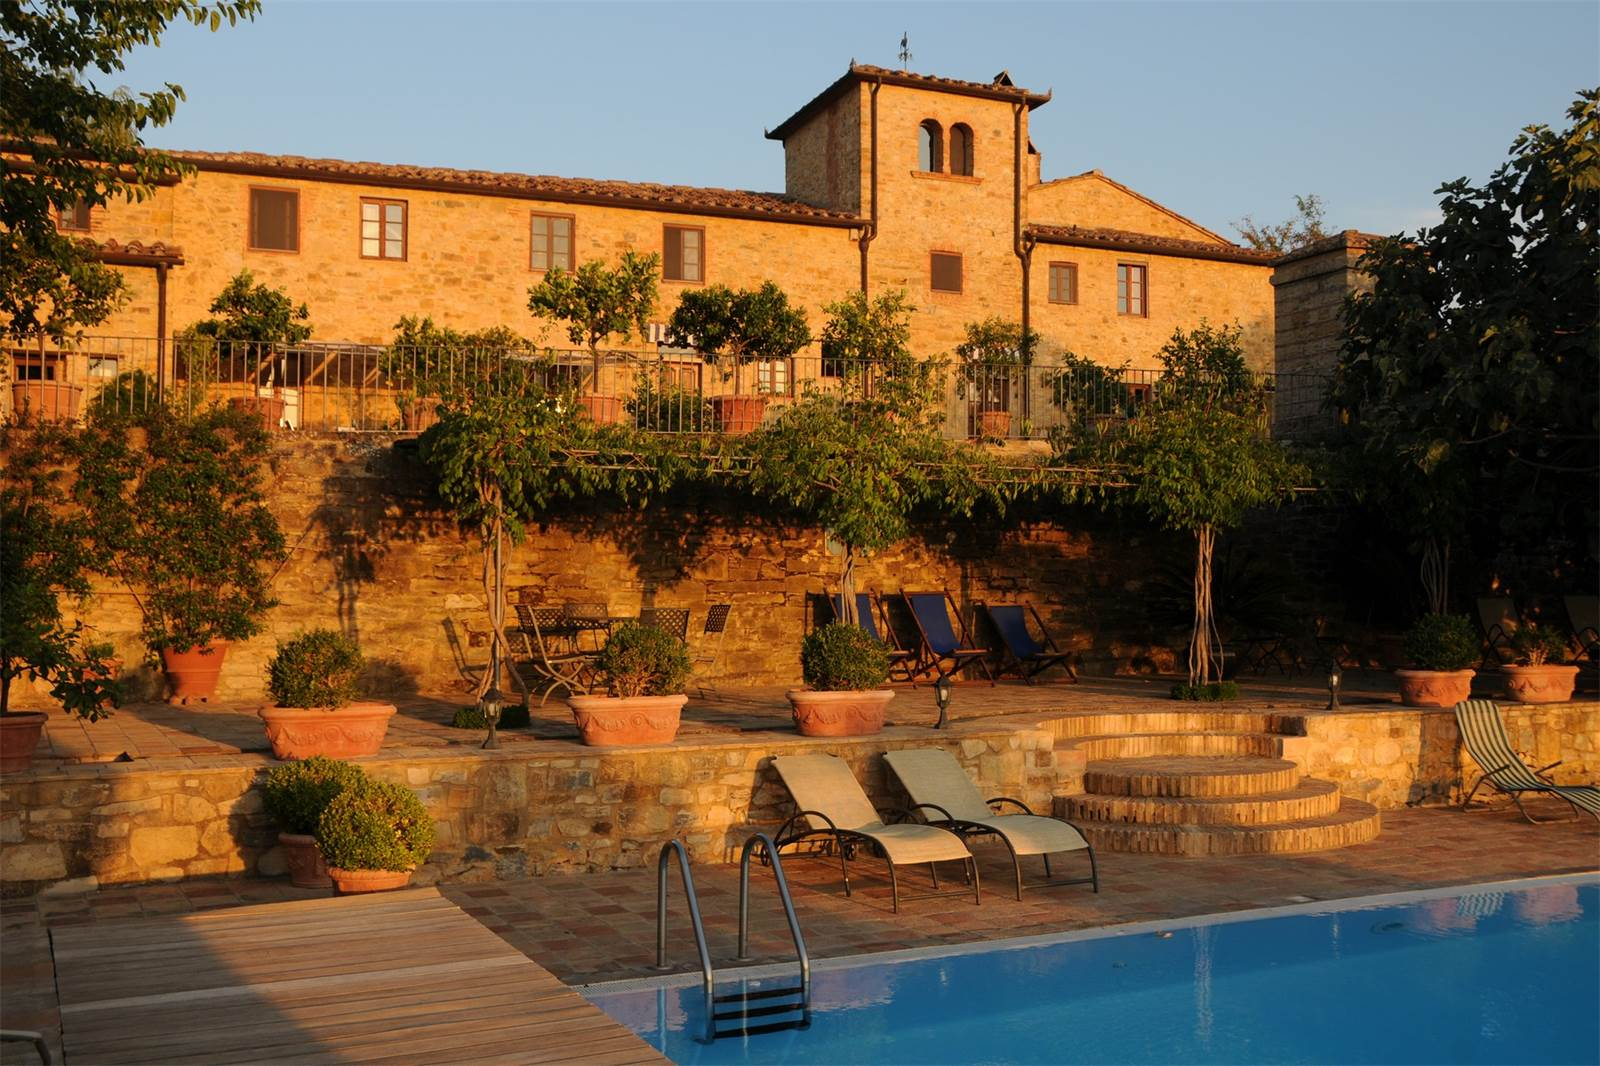 Lovely villa with vineyards in the Chianti Classico